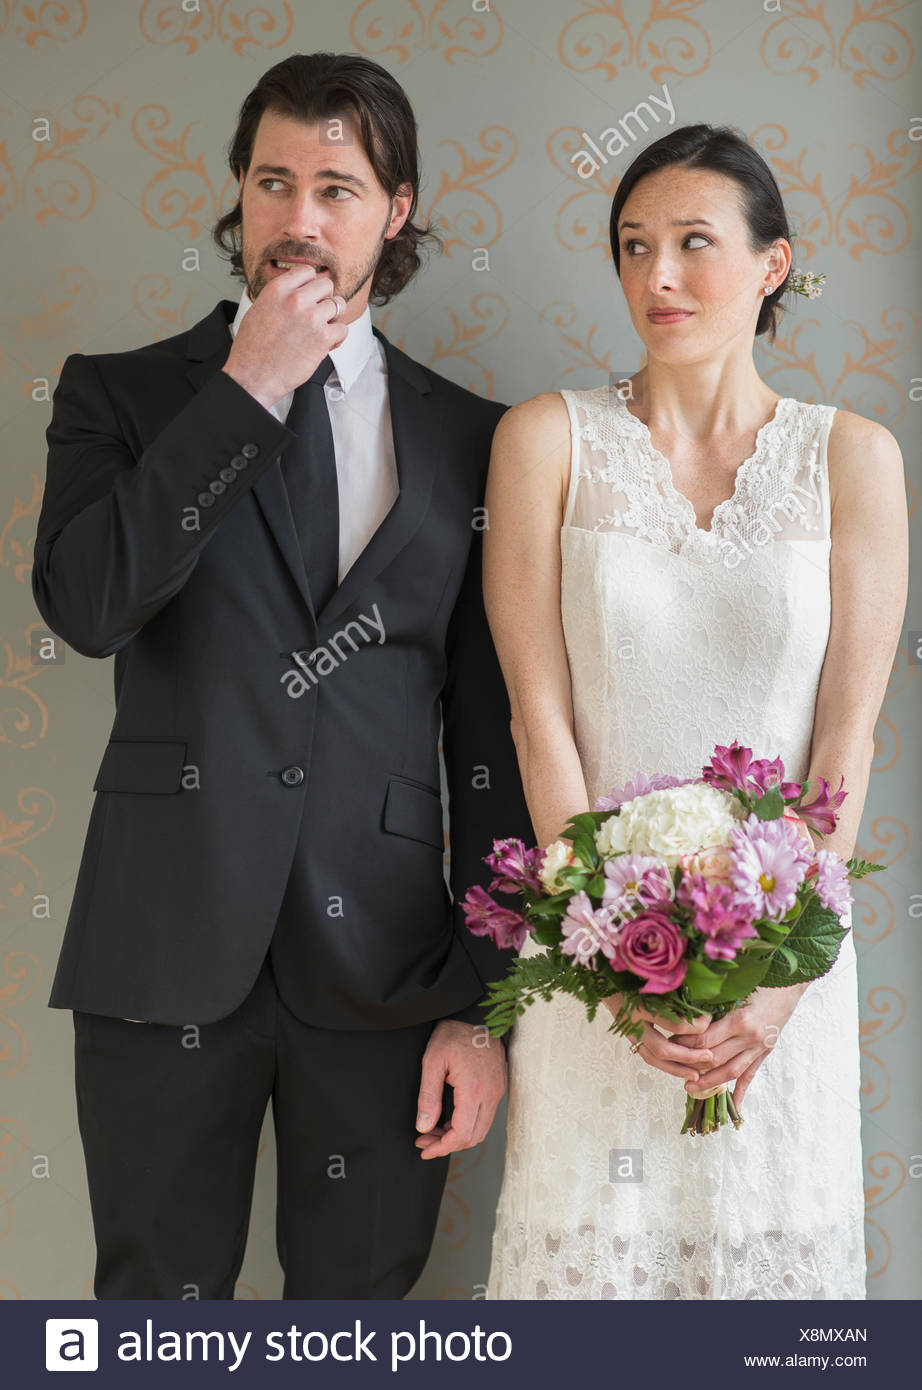 Anxious bride and groom posing with bunch of flowers - Stock Image